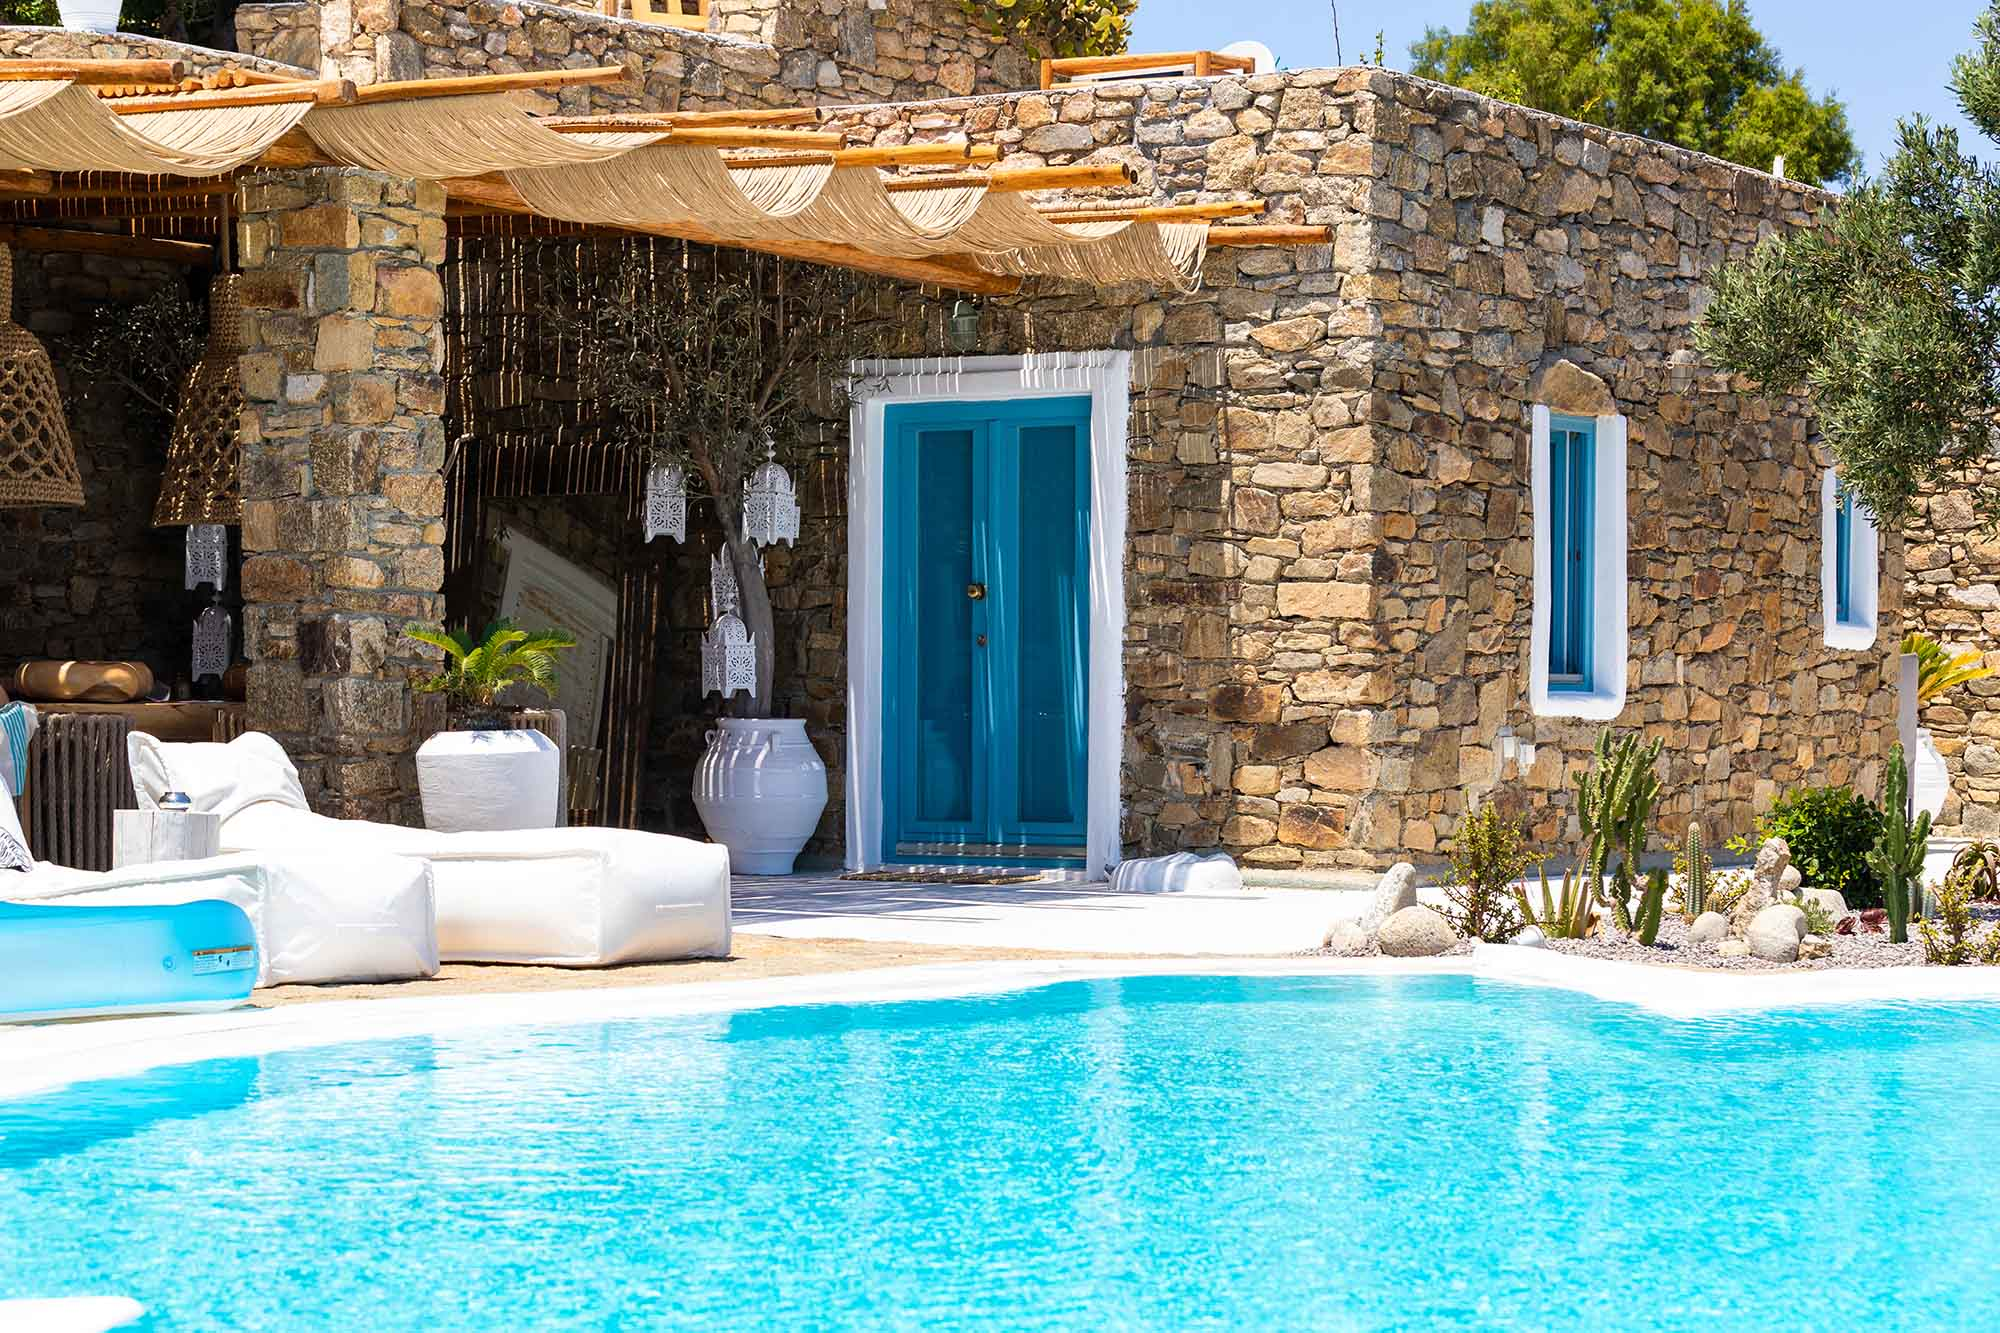 RENT A LUXURIOUS VILLA BY THE SEA IN MYKONOS - VILLA KARKOS - swimming pool under the sun